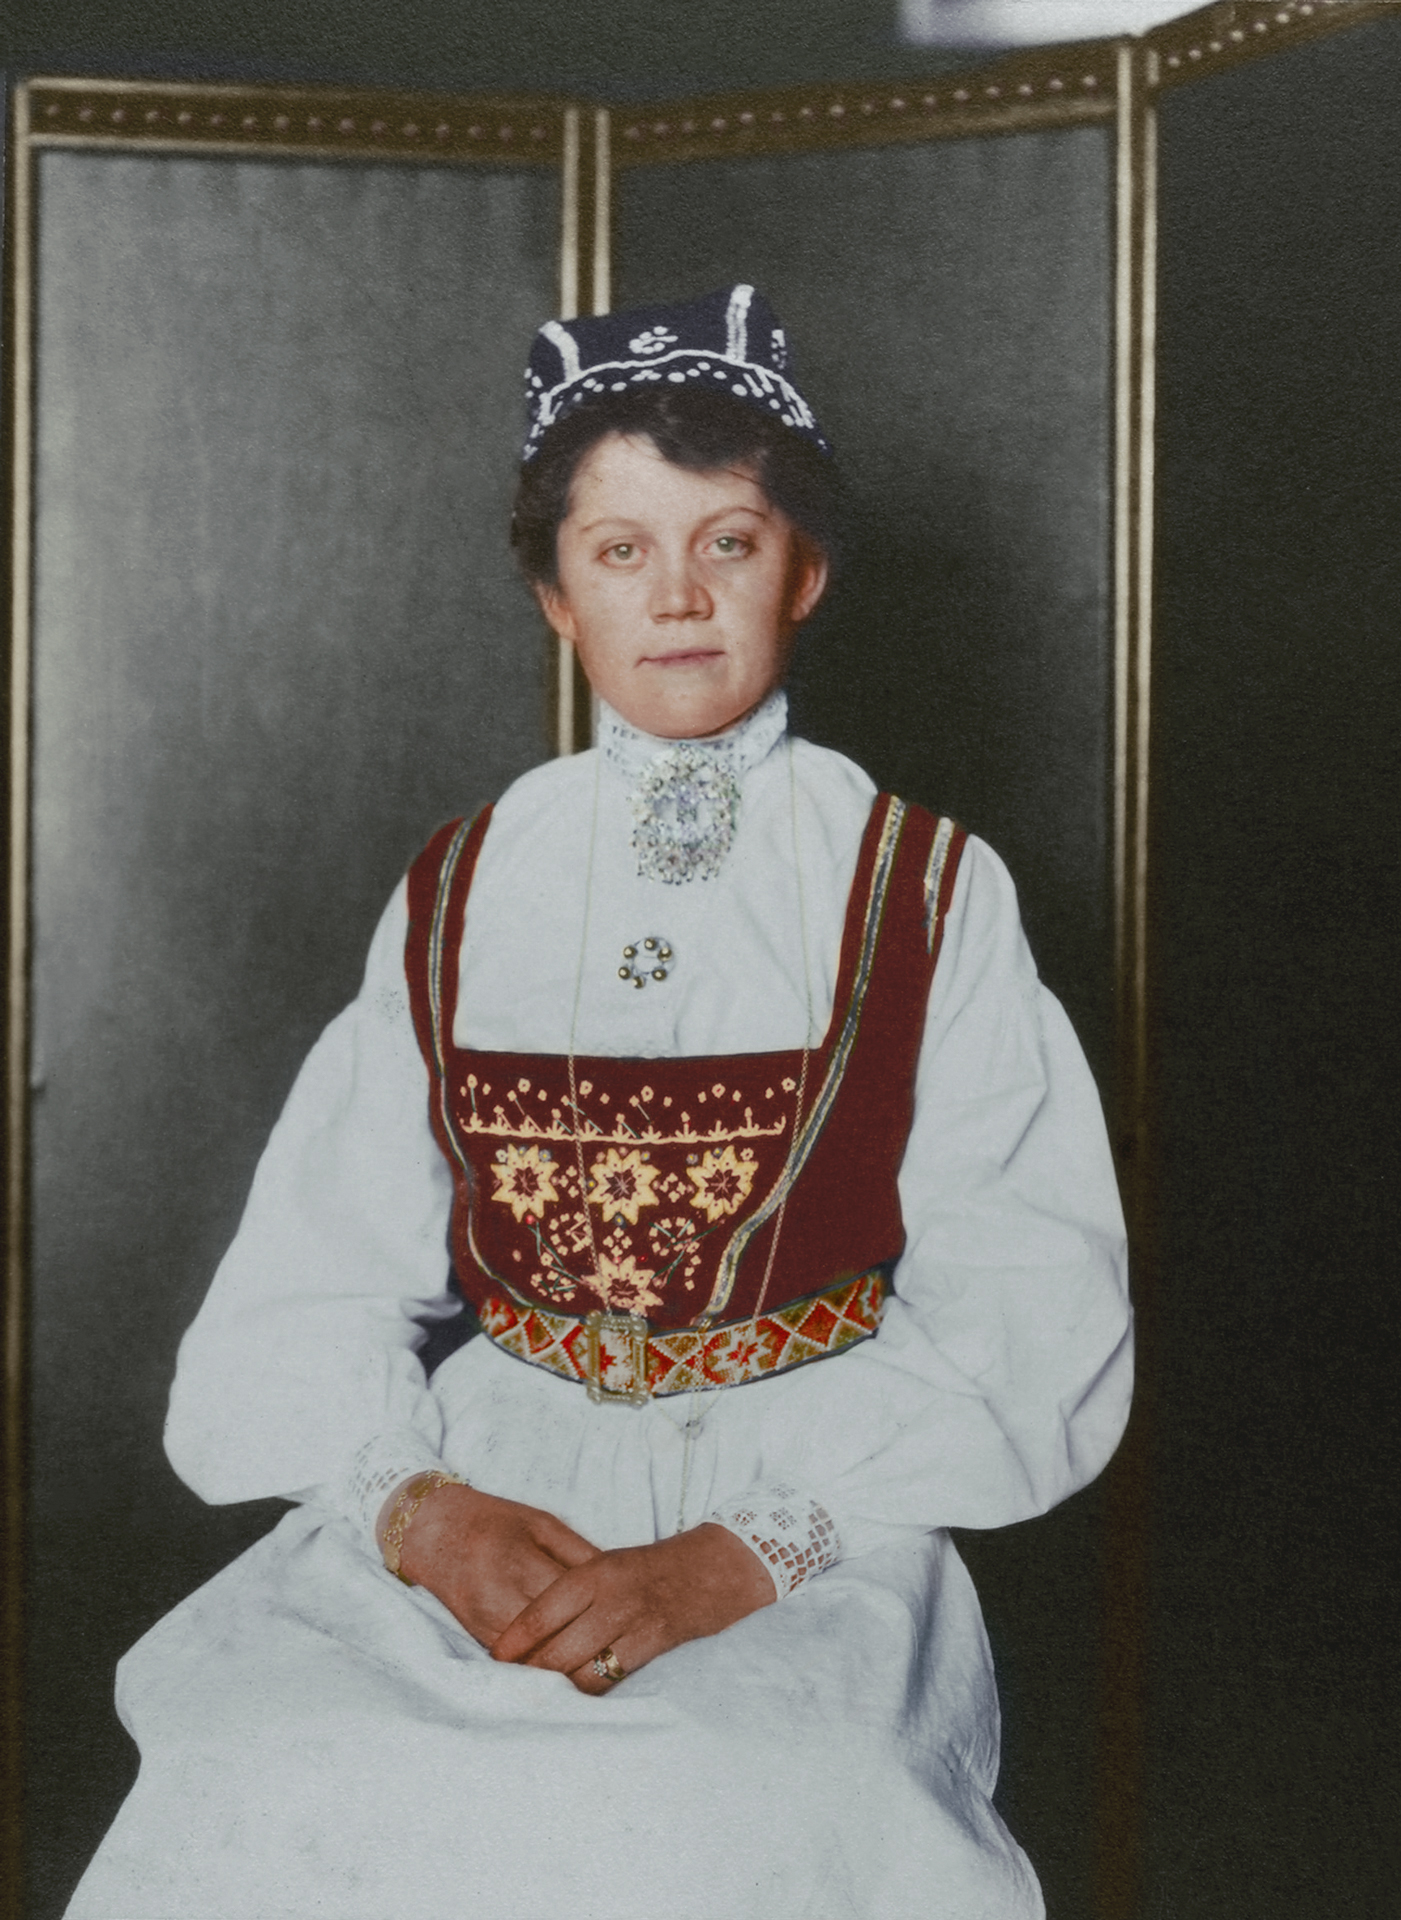 """Norwegian woman."" Bunad is the umbrella term encompassing Norwegian traditional dress that is distinctly Norwegian, though the costumes themselves like so many others are influenced by region, tradition and available material. In rural Norway, clothes were often made at home and typically made from wool, though silk or other imported material was available. Decoration was elaborate or sparse depending on the region, or whether or not the dress was considered Sunday best. In much of rural Norway, women often covered their hair as a sign they were married."